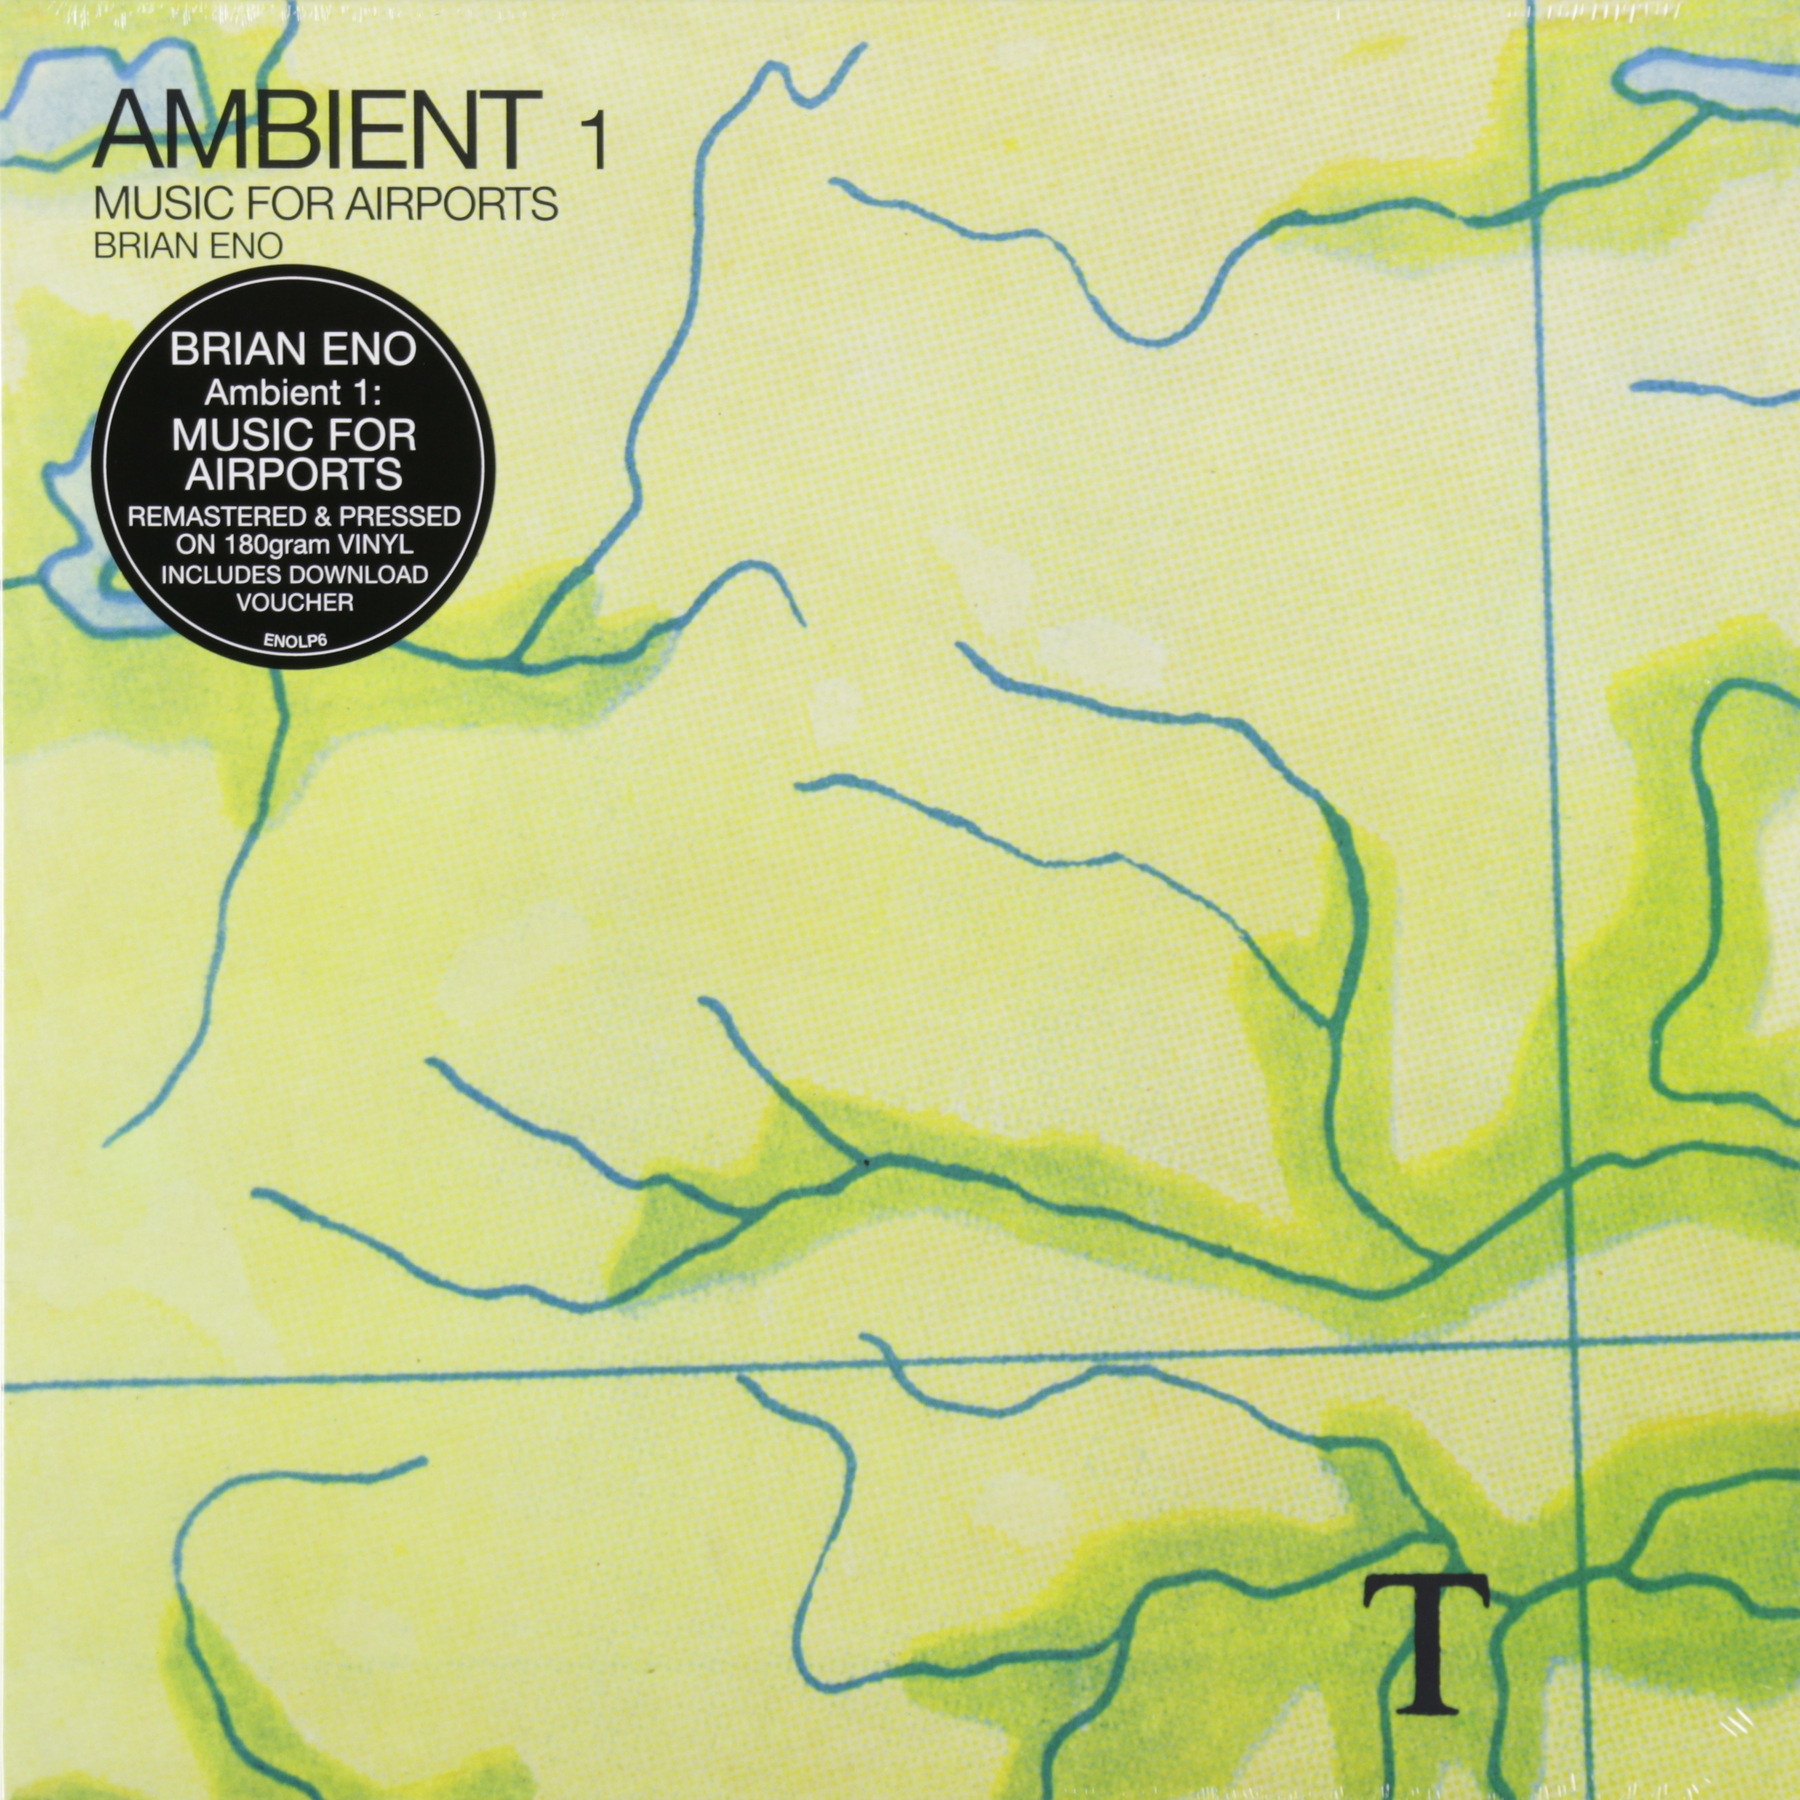 brian_eno__ambient_1x_music_for_airports